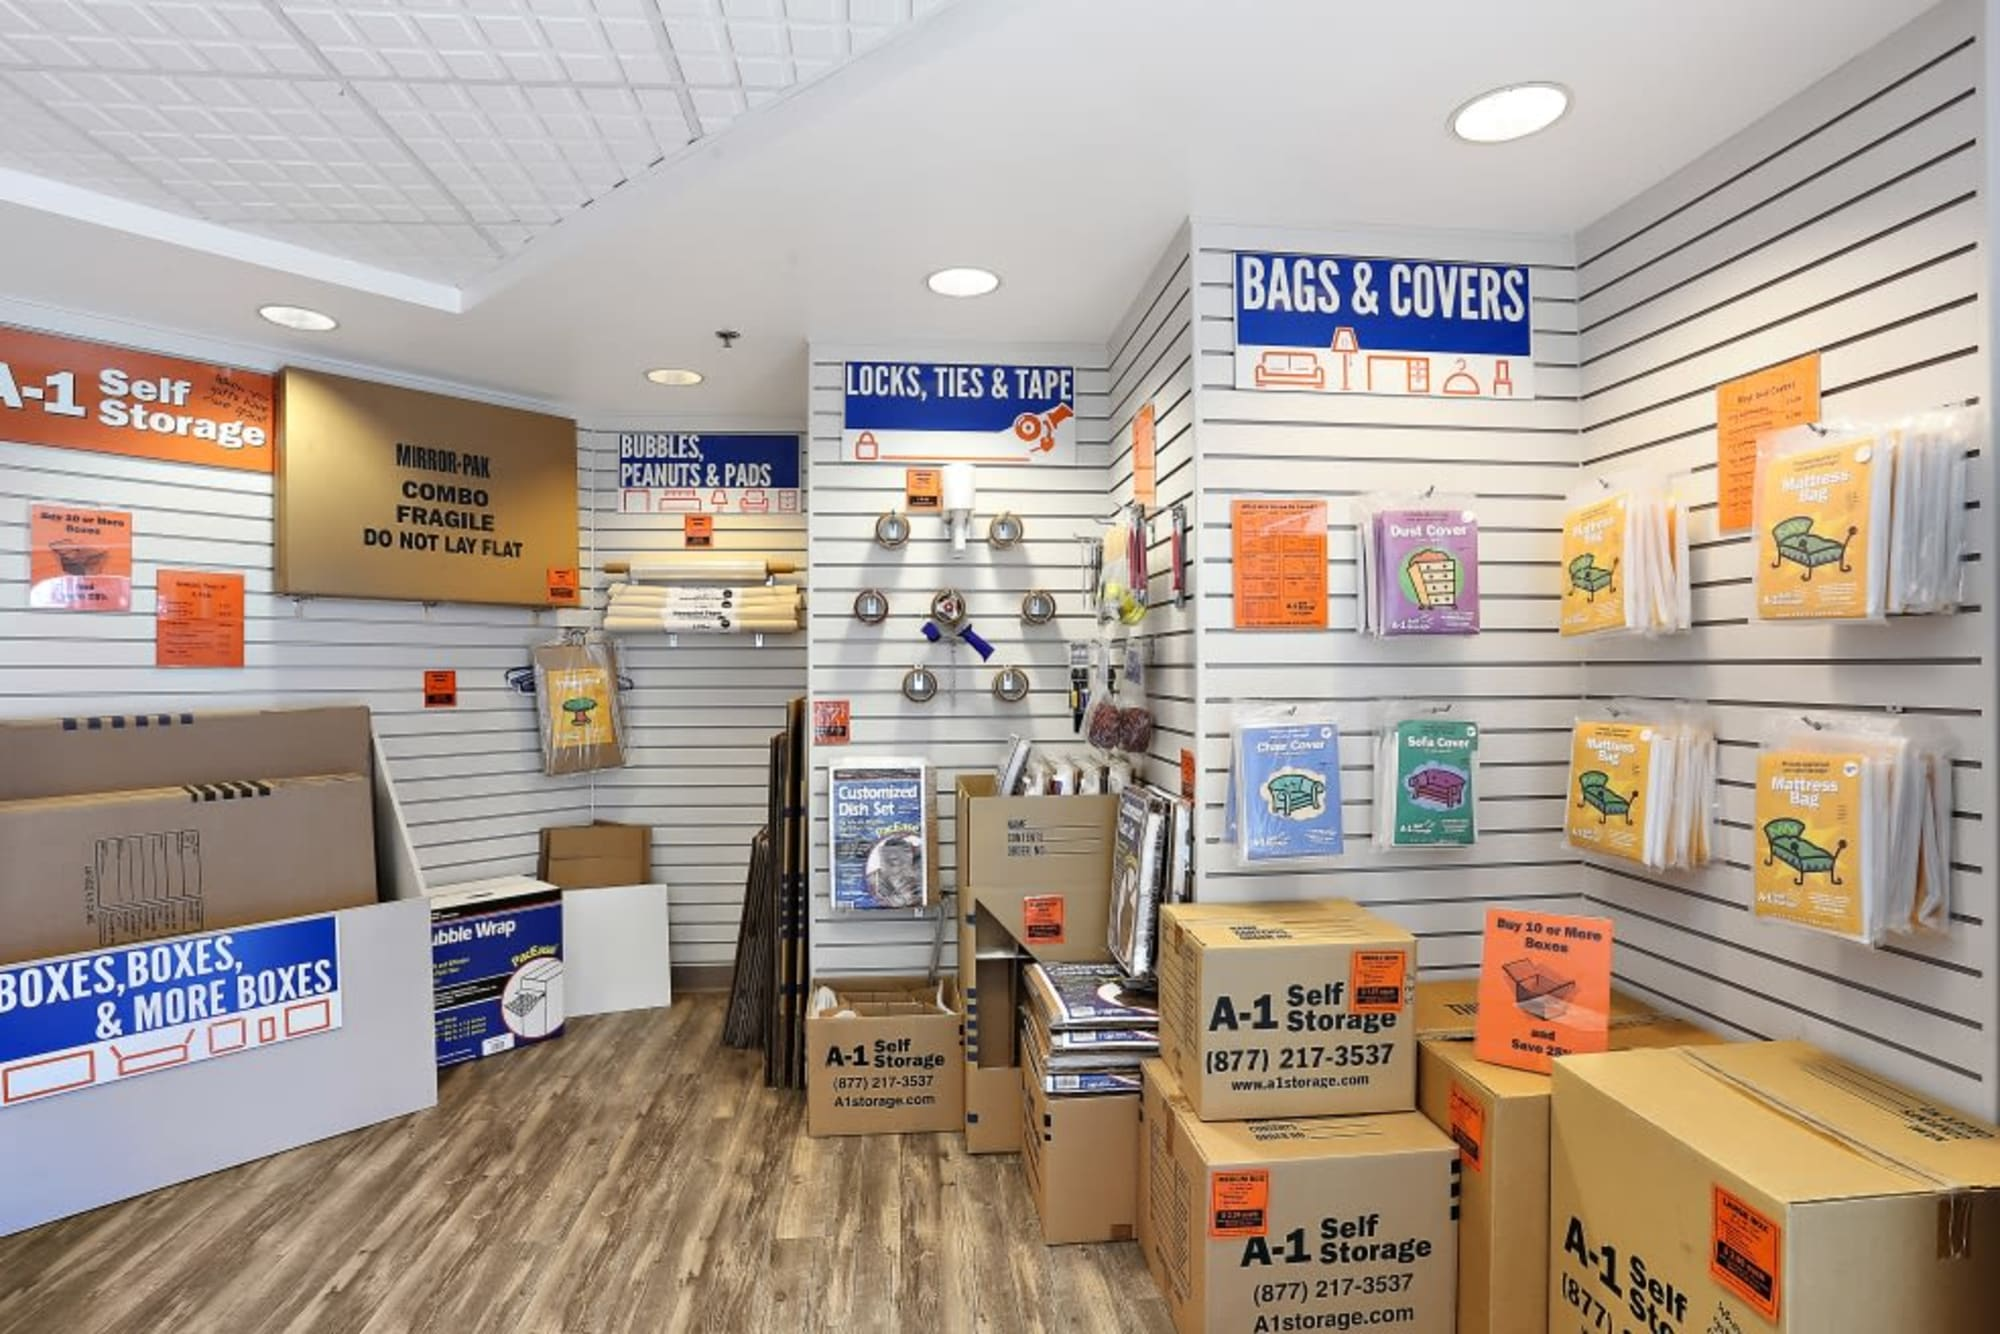 Packing supplies available from A-1 Self Storage in La Mesa, California